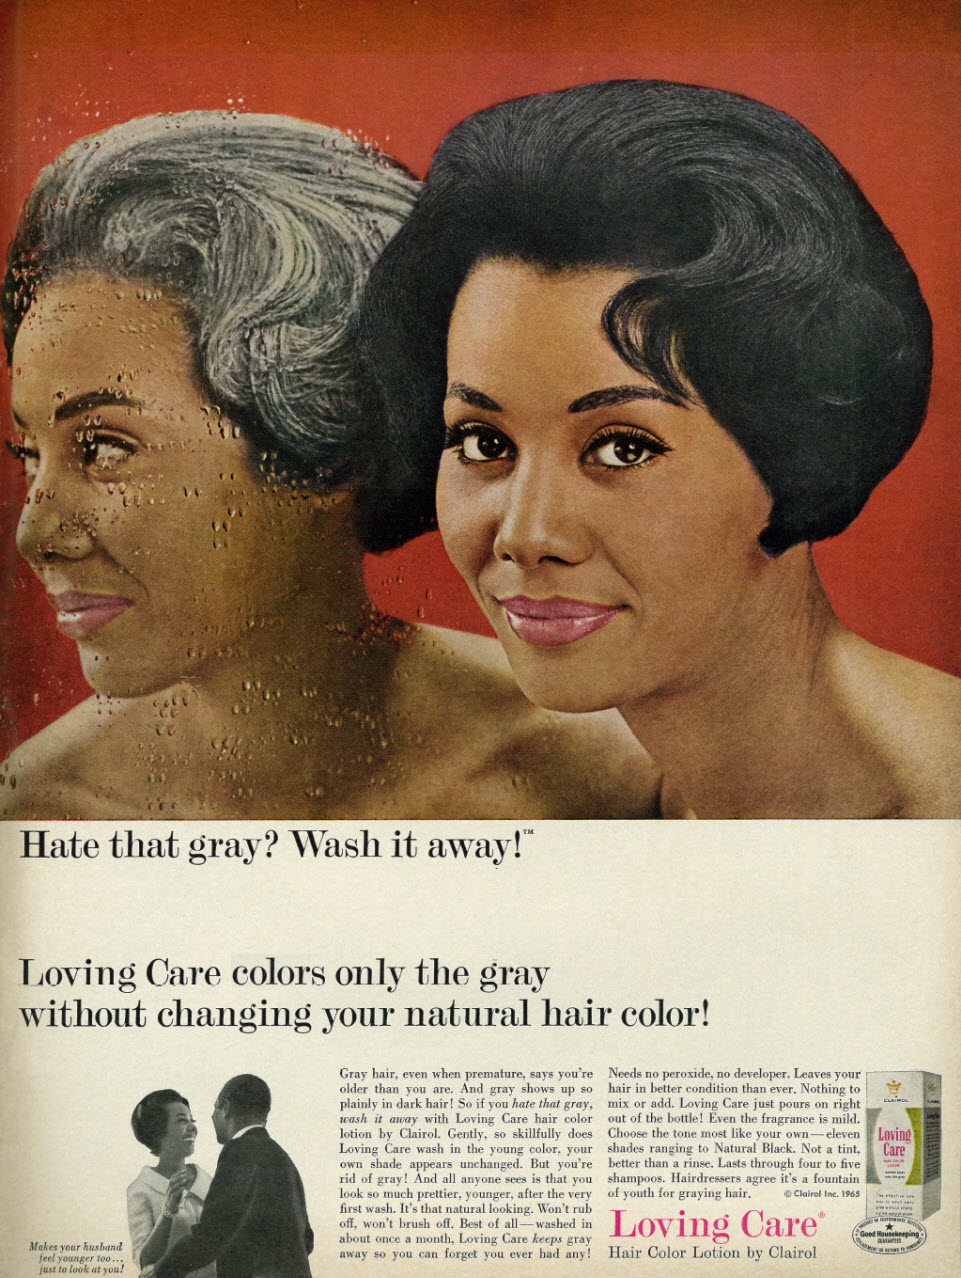 Quot Hate That Gray Wash It Away Quot These 1960s Ads For